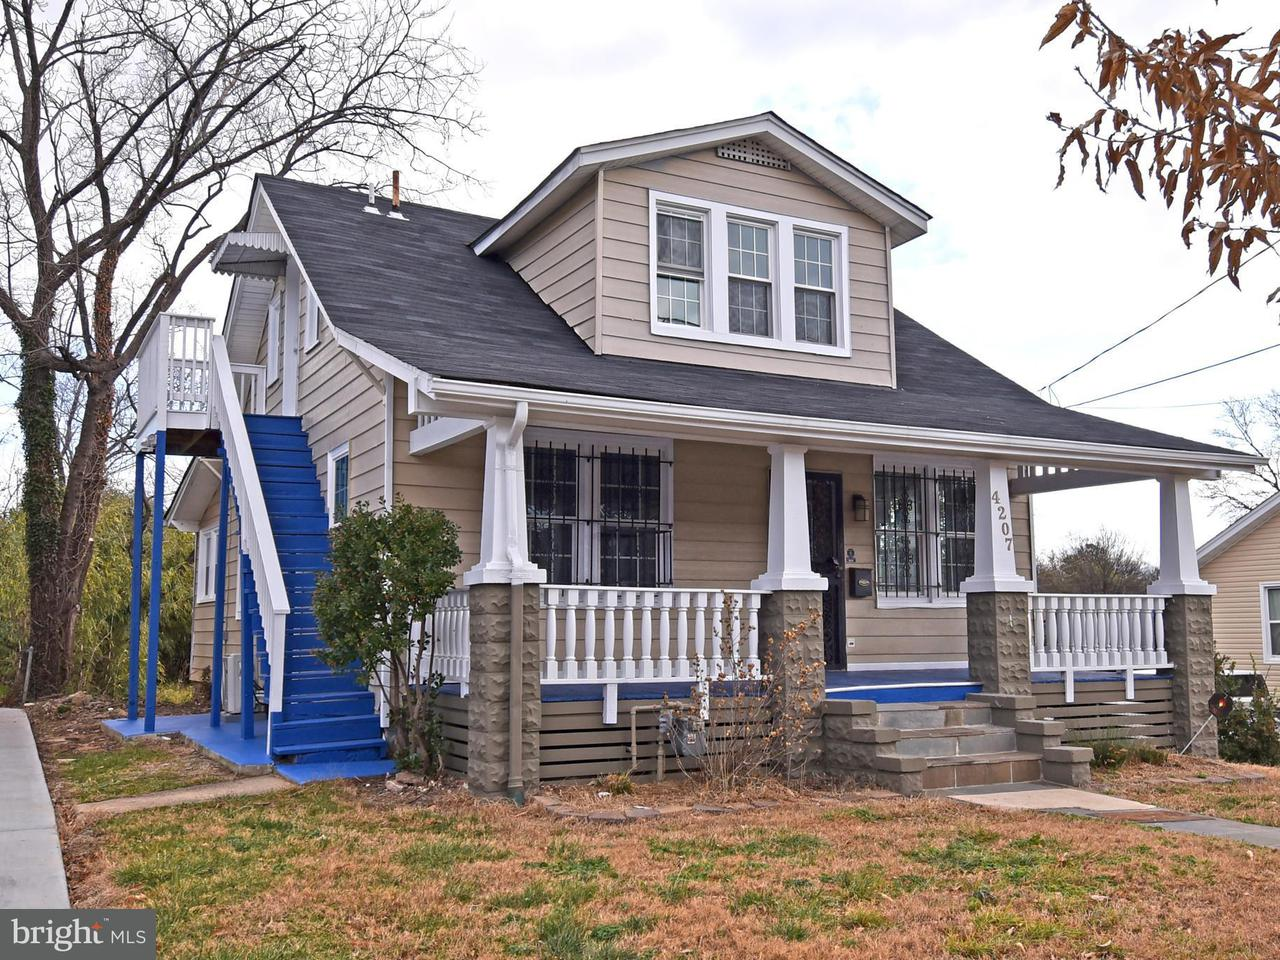 Single Family Home for Sale at 4207 28TH Street 4207 28TH Street Mount Rainier, Maryland 20712 United States